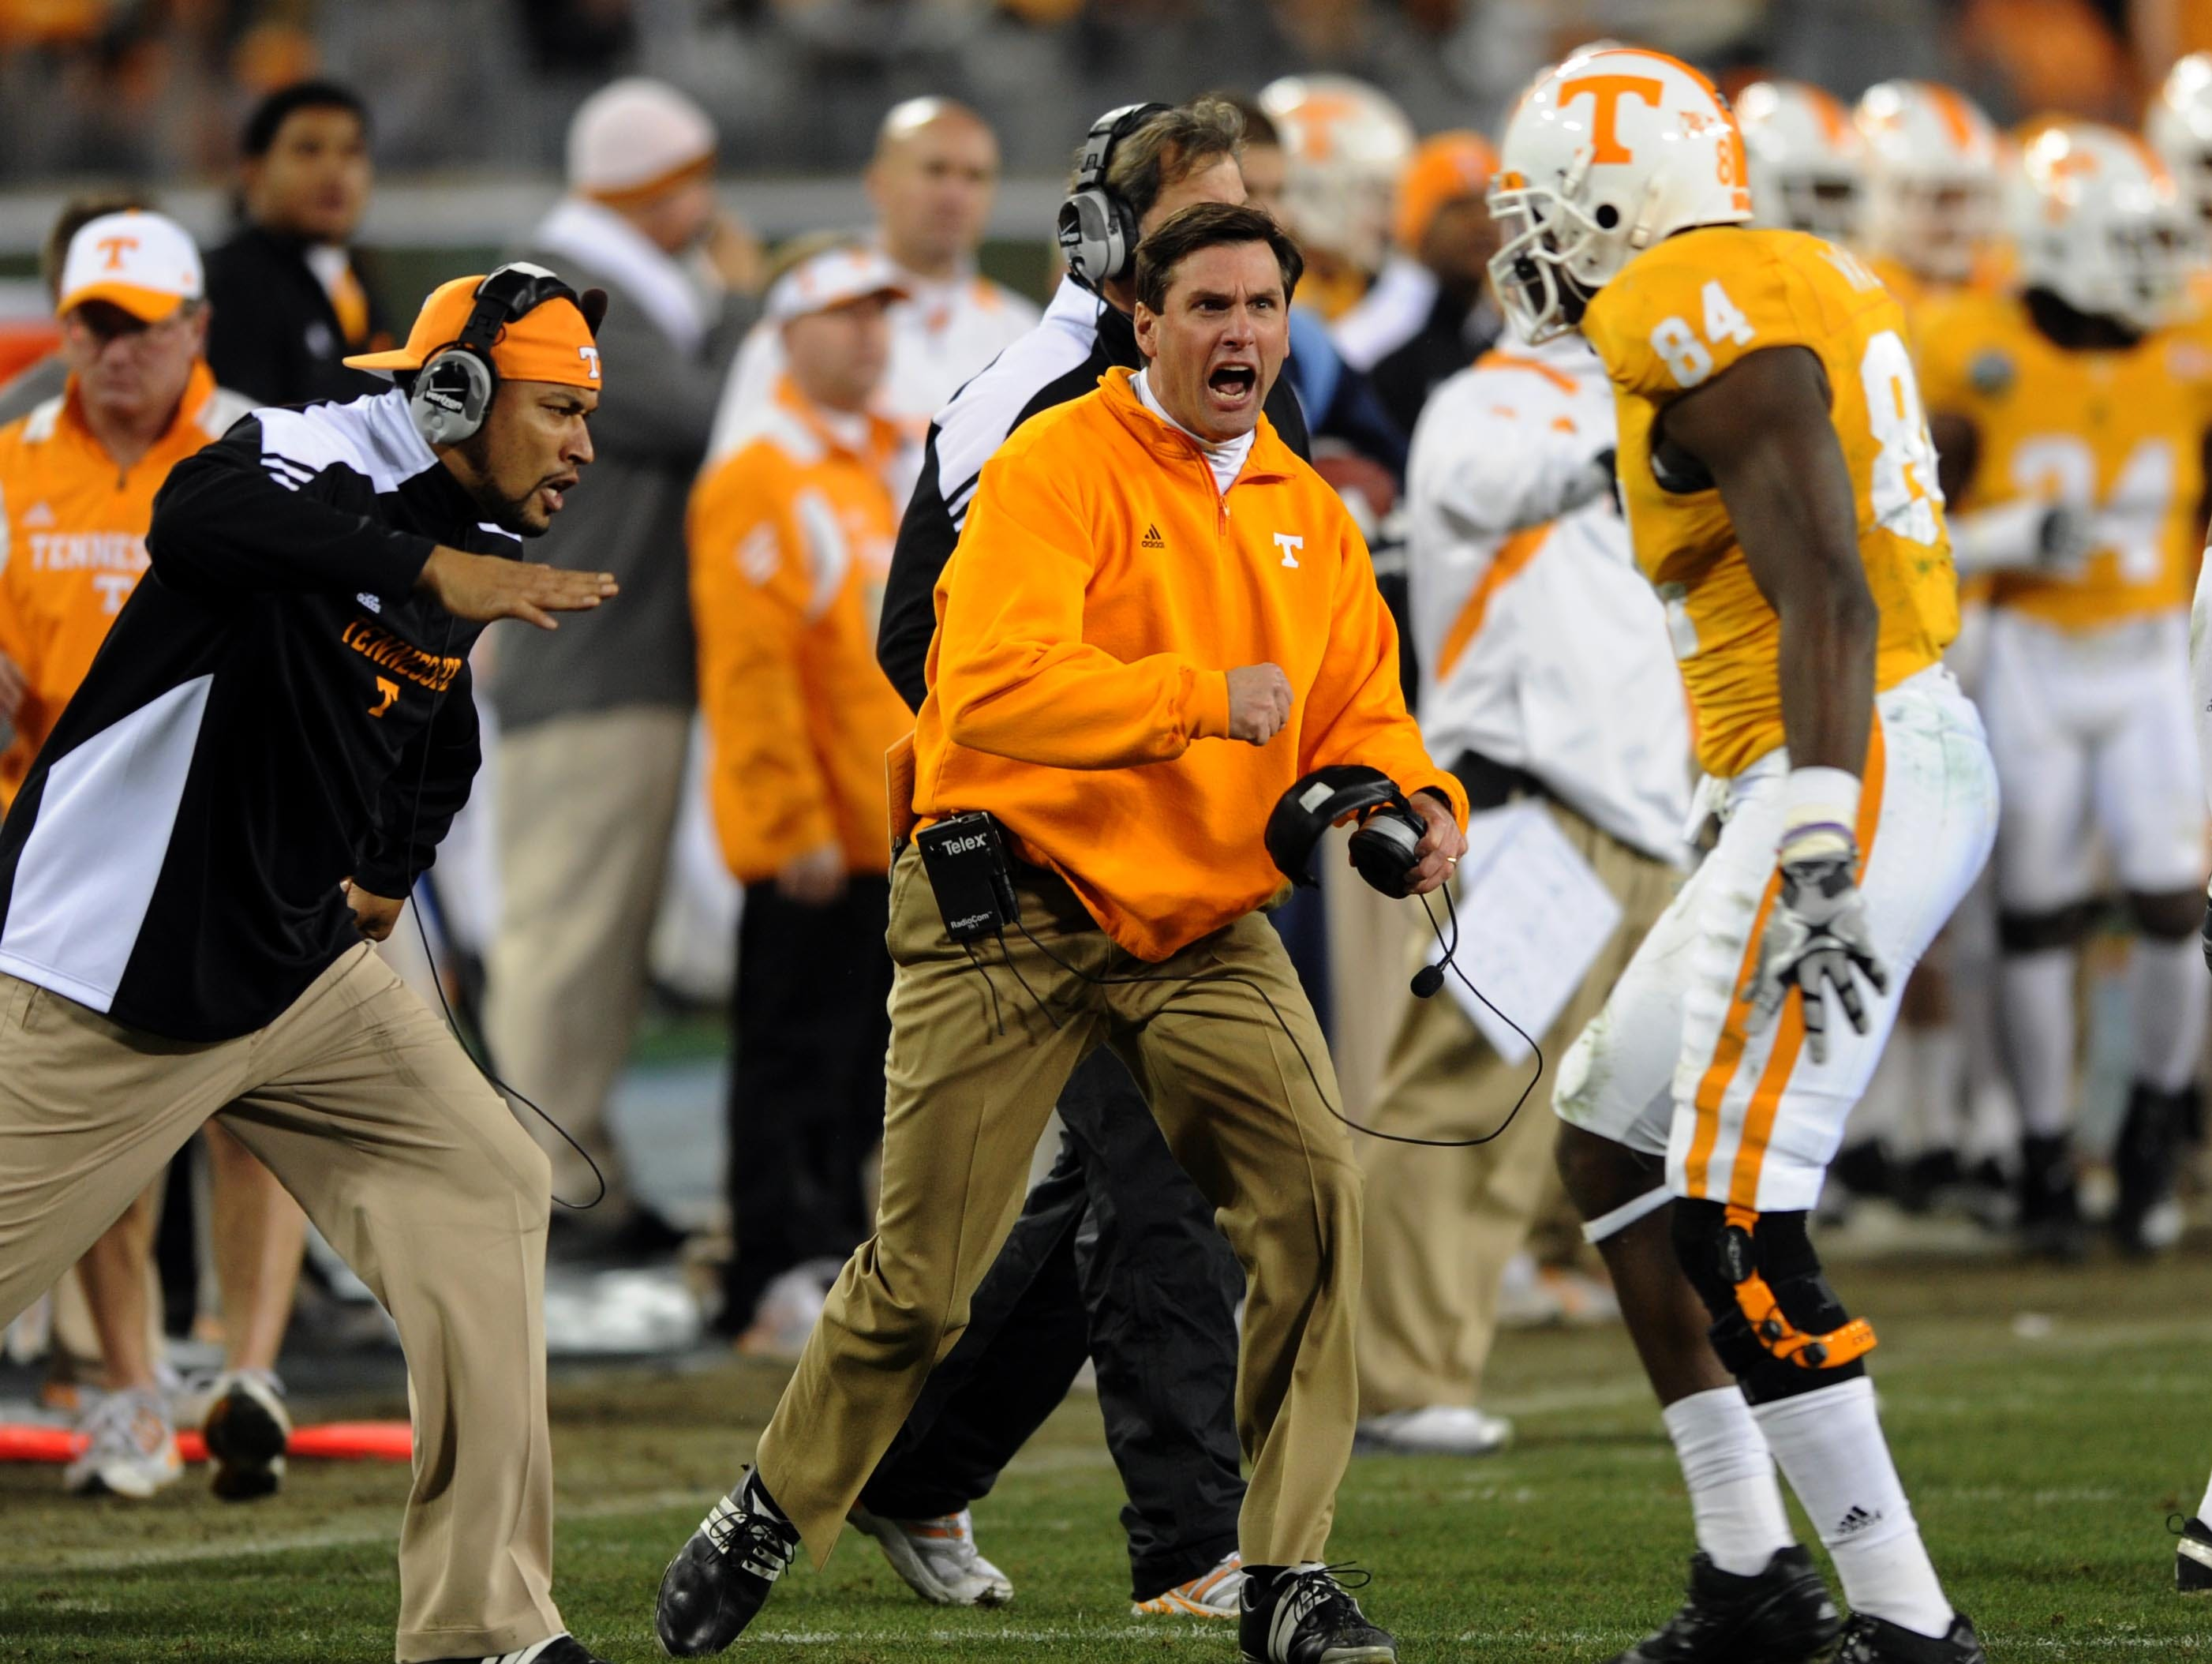 Tennessee head coach Derek Dooley is excited about a good defensive attempt by Chris Walker (84) during the first half Thursday, Dec. 30, 2010 in the Music City Bowl in Nashville at LP Field.